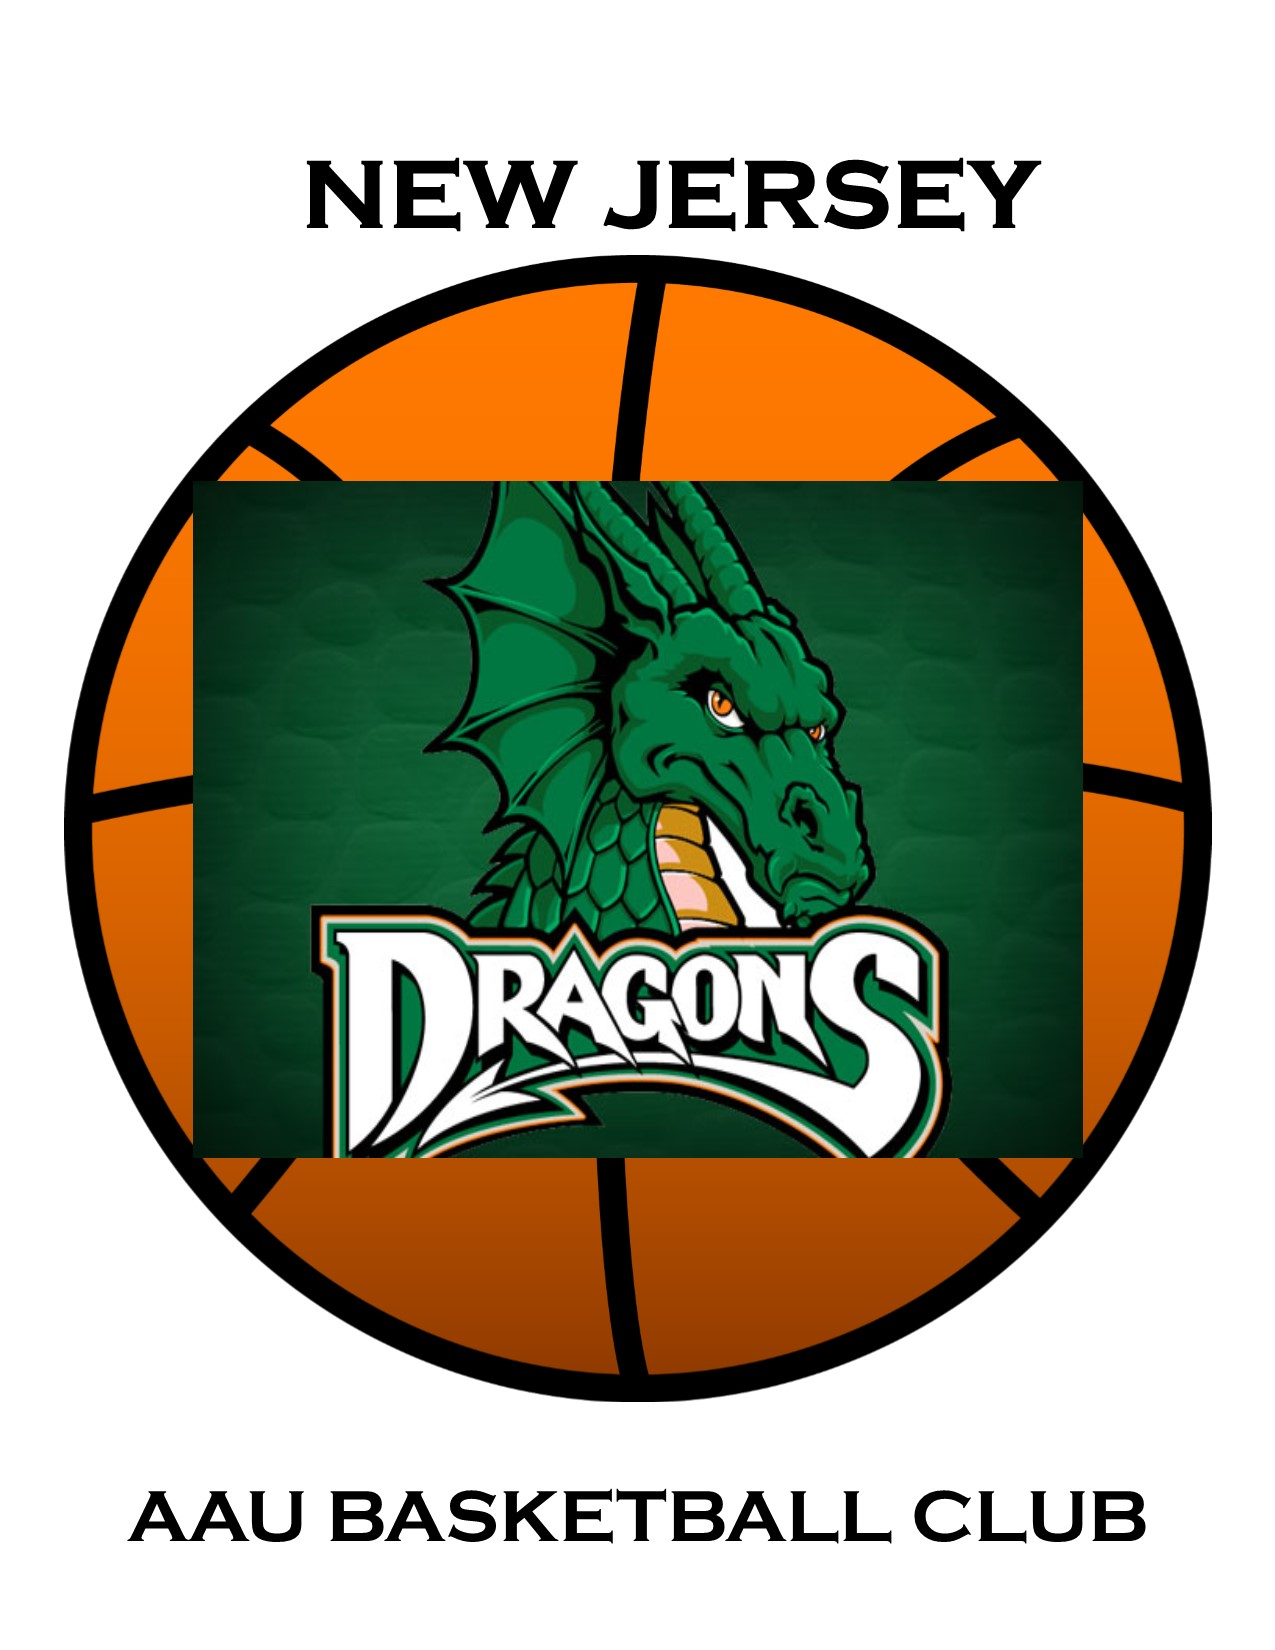 79aaf24ca5f4ed2f84fa_NJ_Dragon_Basketball_Logo_PP.jpg